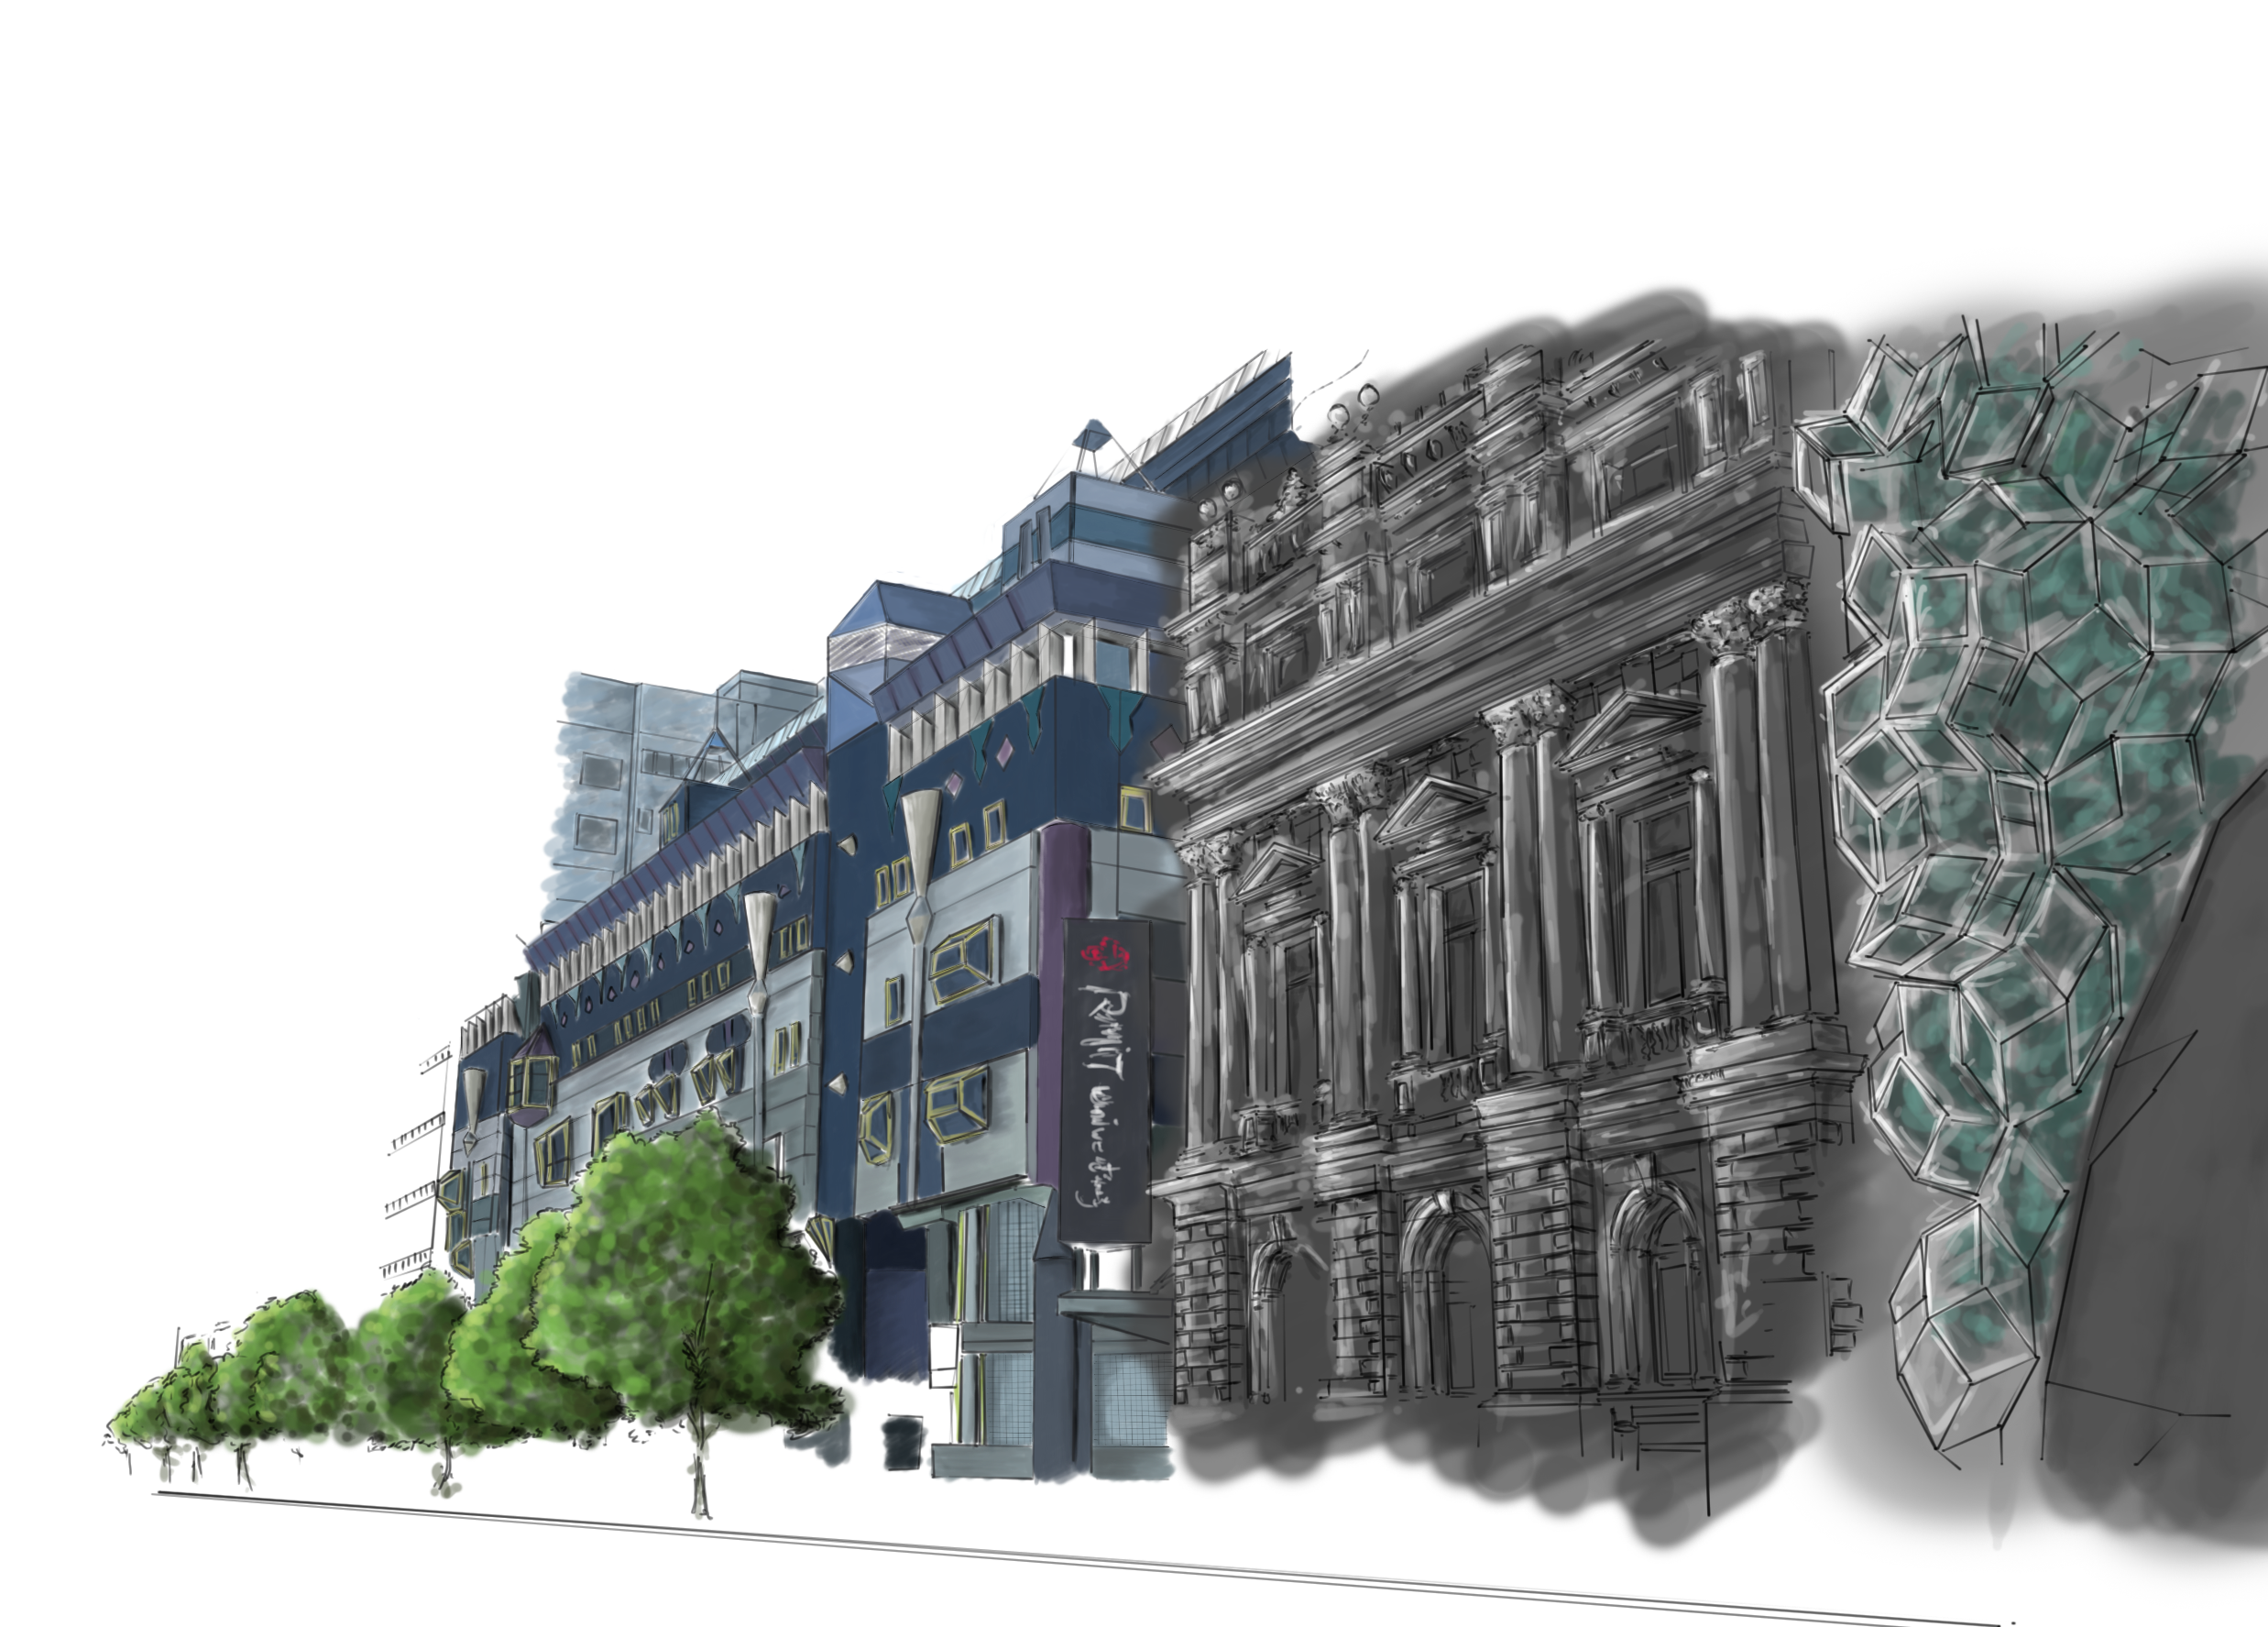 File:RMIT Building 8 painting.png.